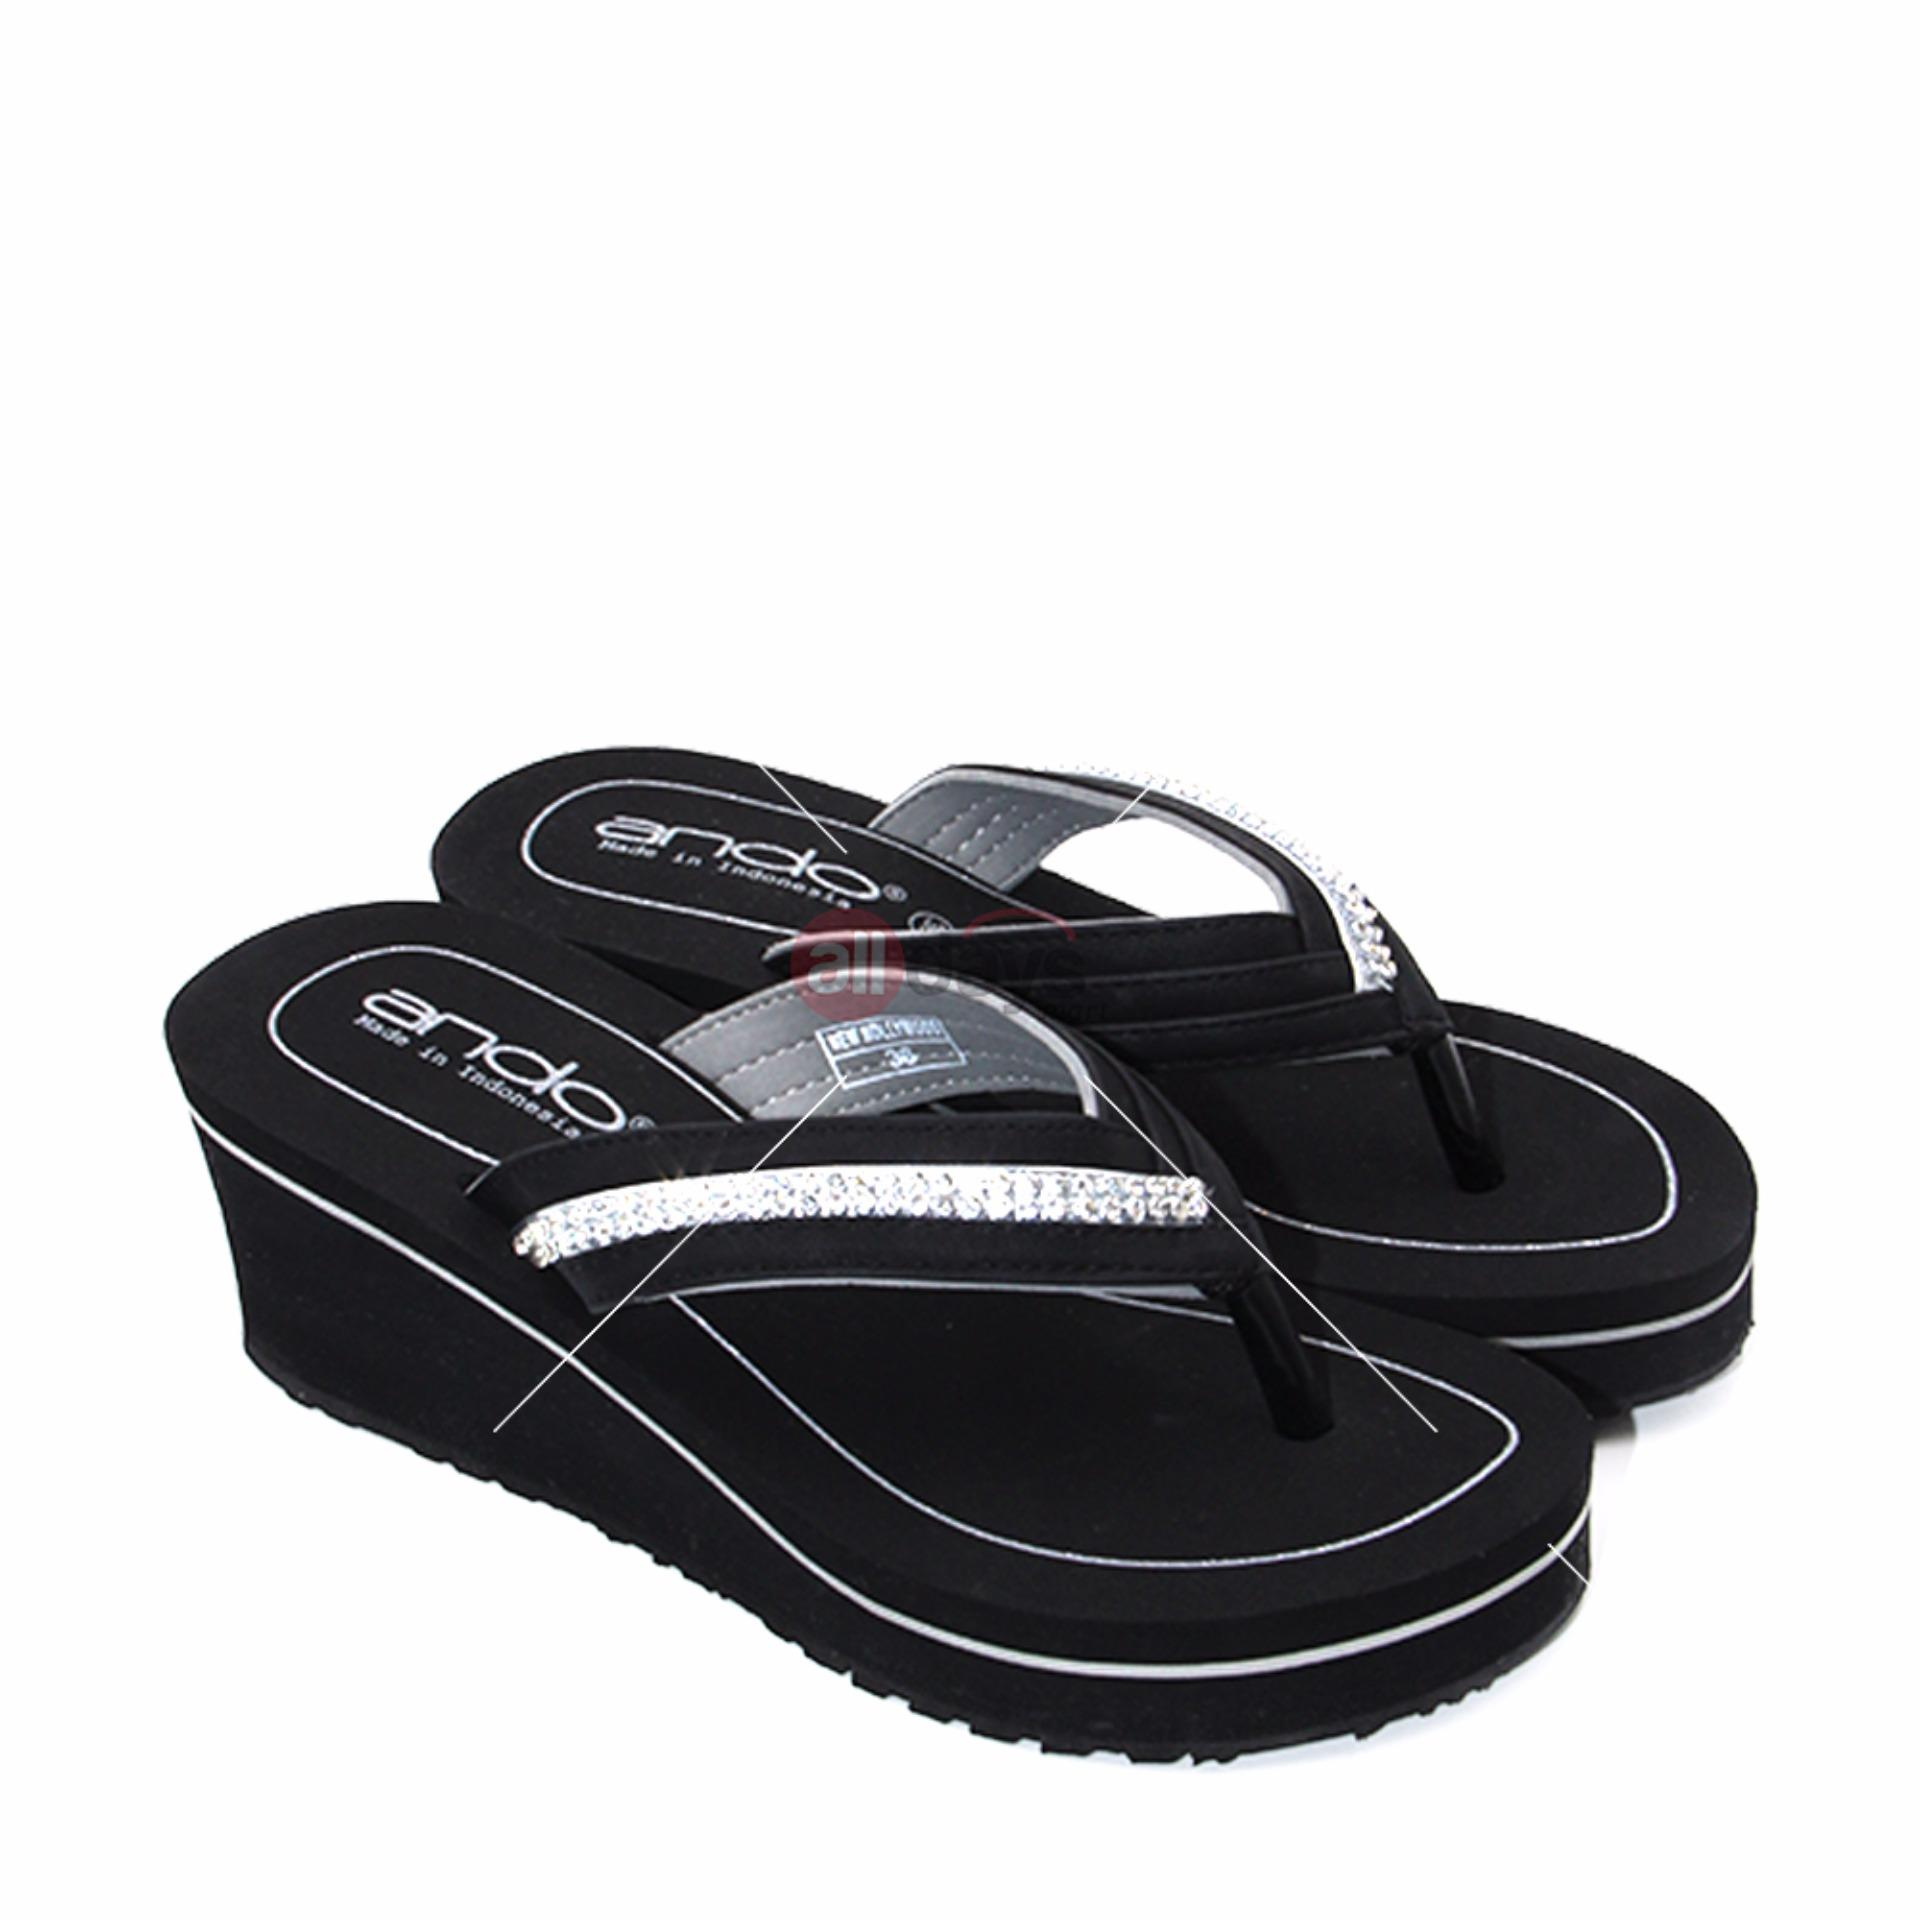 Ando Sandal Jepit Wanita Casual New Hollywood - Silver Size 36-40